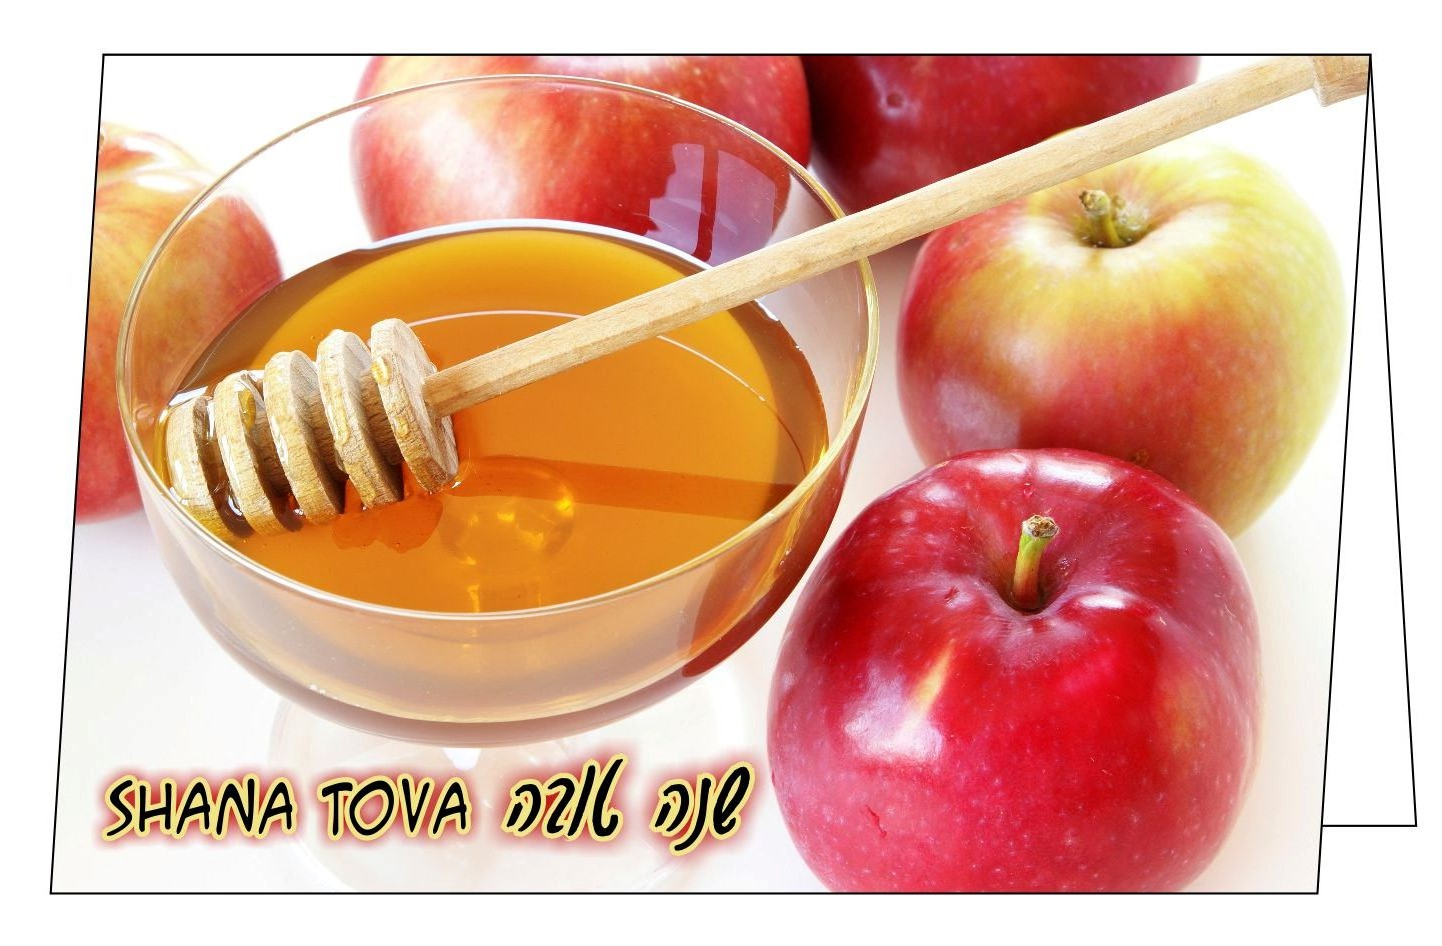 Shana Tova Cards For Rosh Hashanah And Charity From The Masbia